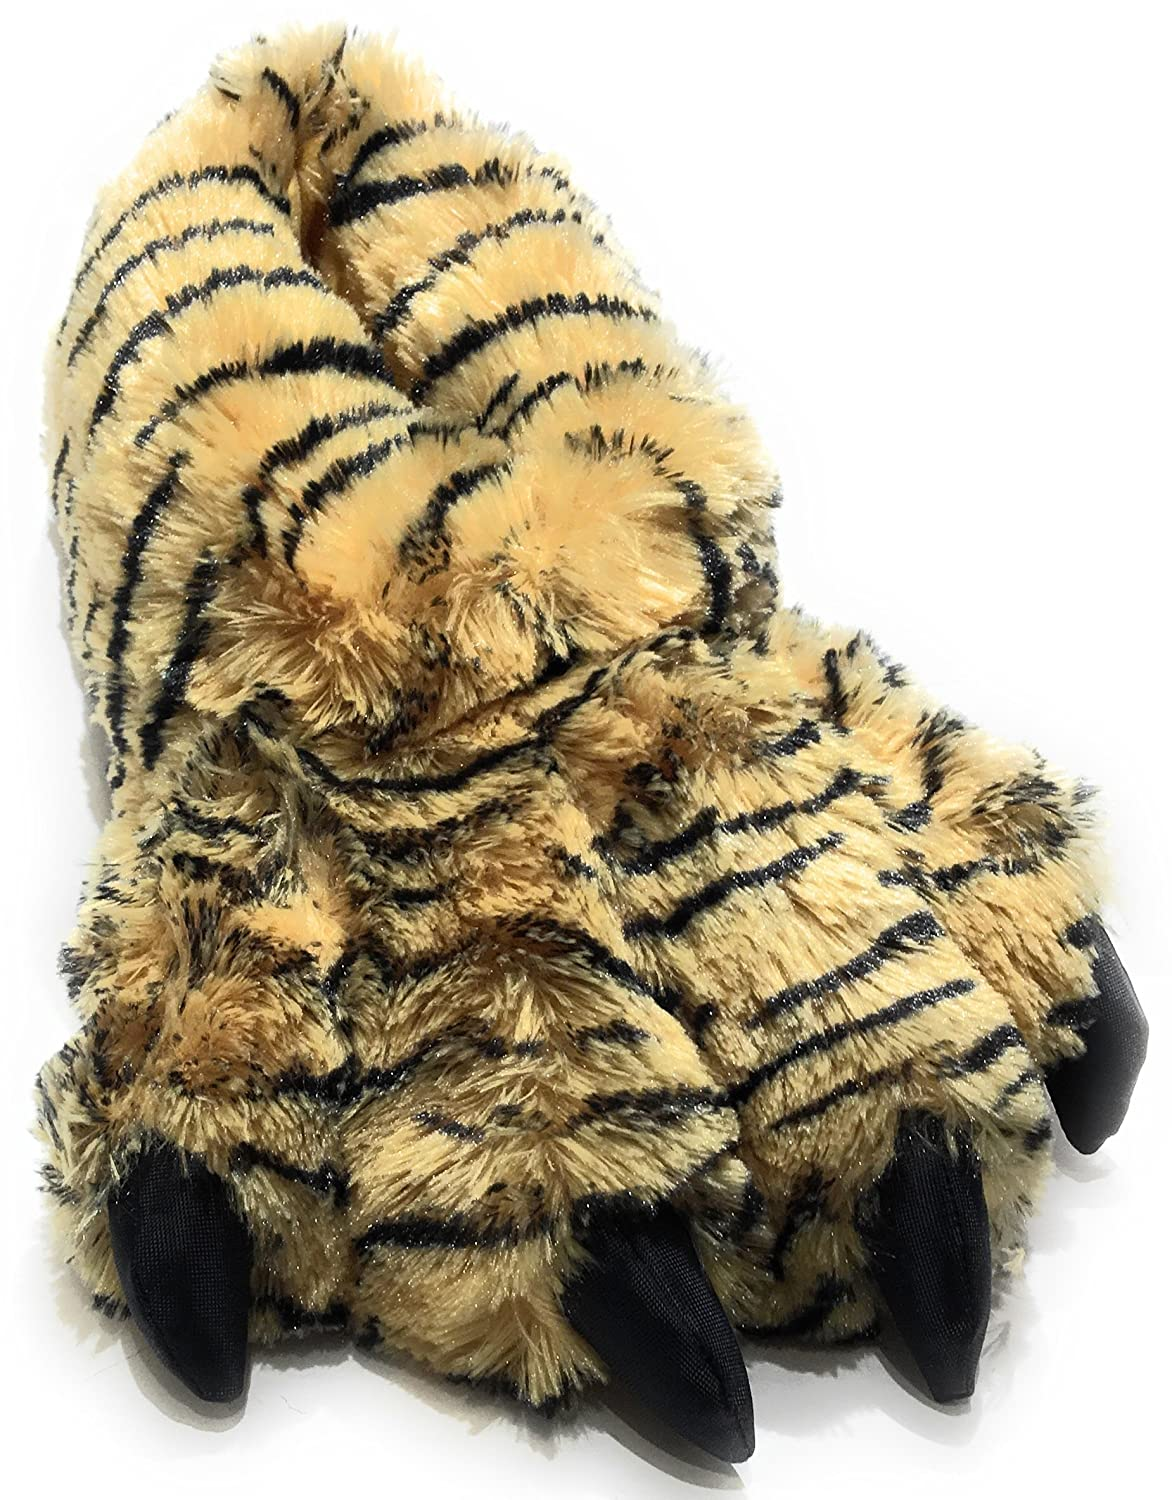 Bengal Tiger Sundial Wild Ones Furry Animal Claw Slippers for Toddlers, Kids and Adults